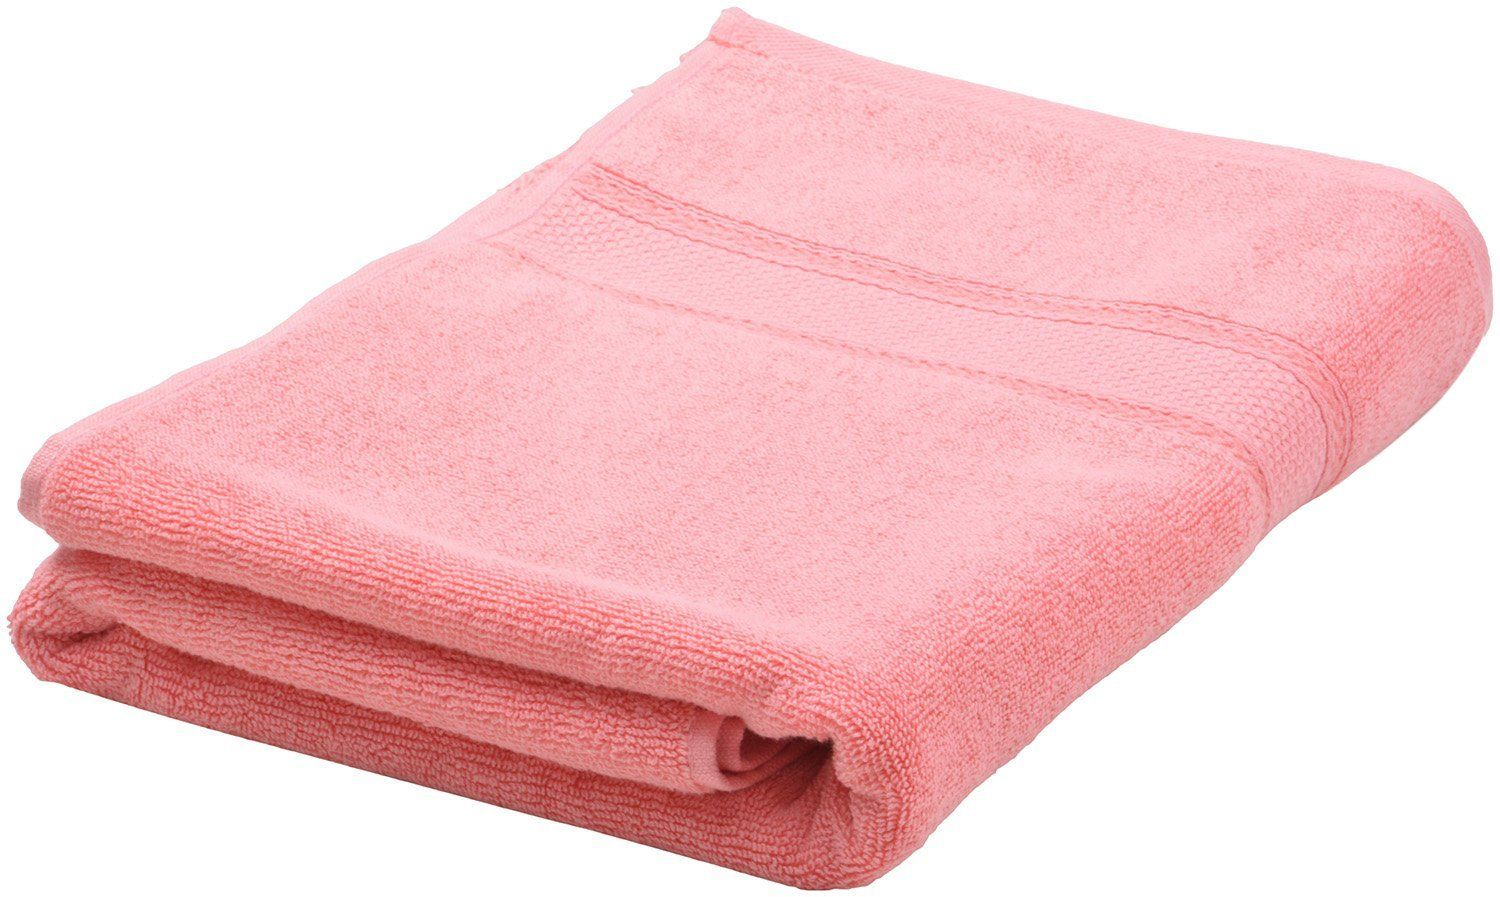 Buy HOMEWAY 620 GSM 2-Piece Cotton Bath Towel - Salmon Rose Online at Low Prices in India - Amazon.in